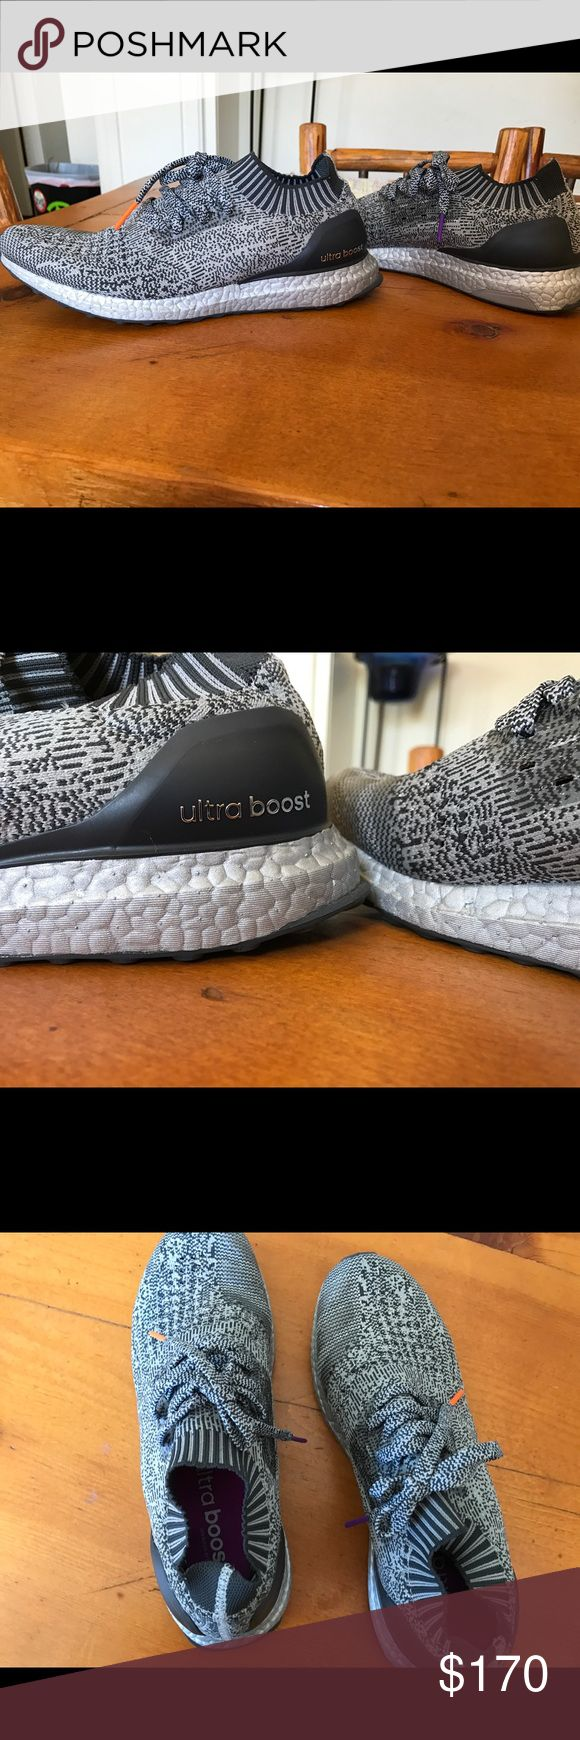 Adidas Silver Uncaged Ultra Boost Size 10. Worn three times, look brand new. Silver boost, 100% Authentic. Comes with box! Taking offers Adidas Shoes Sneakers